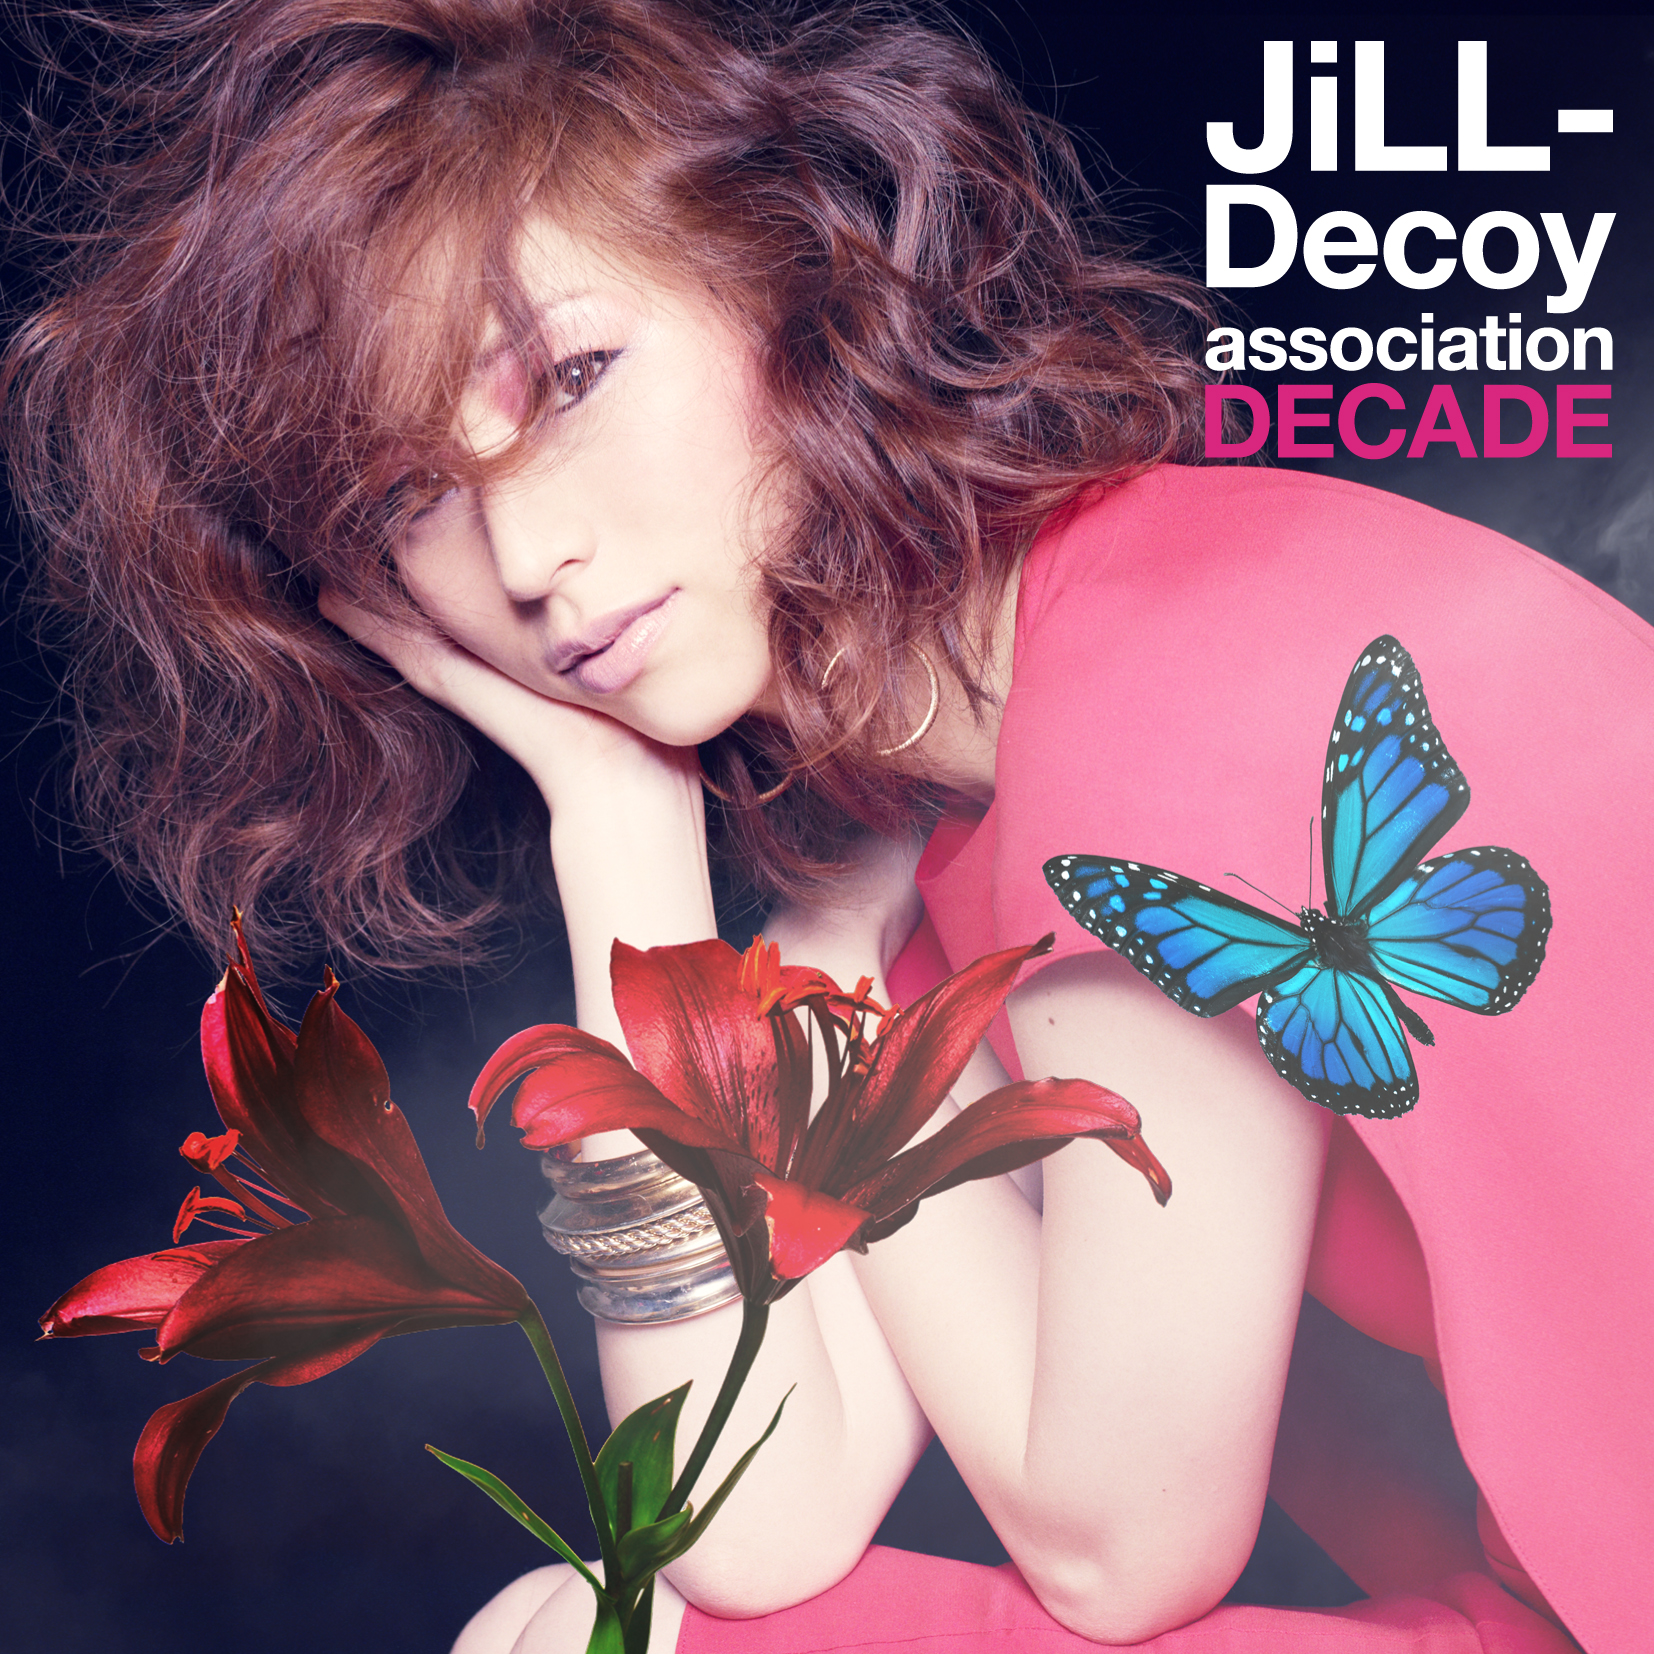 JiLL-Decoy association 「DECADE」